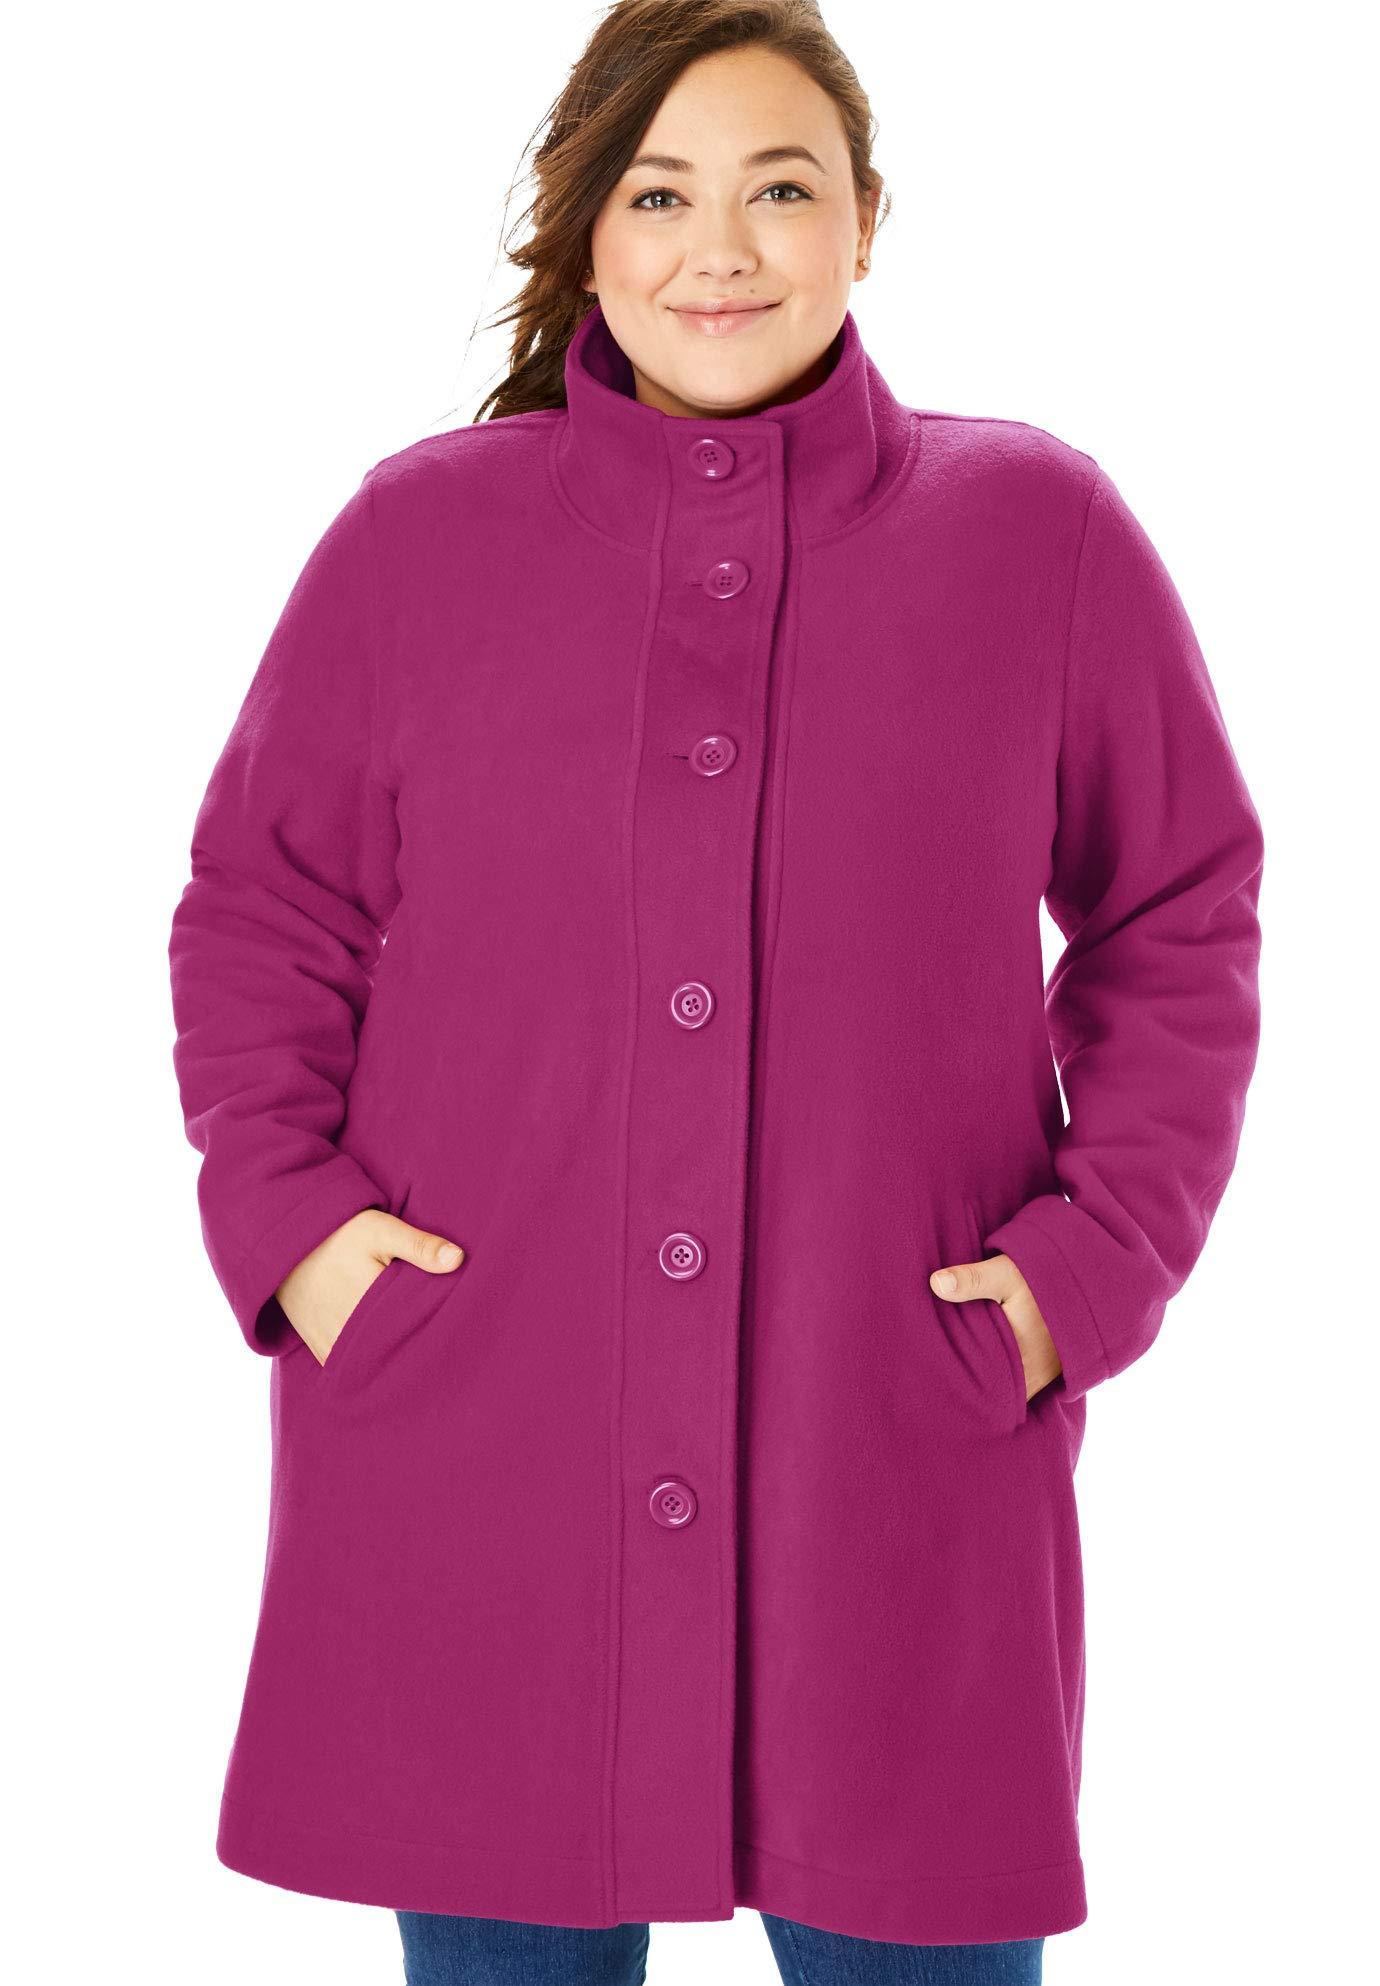 Woman Within Women's Plus Size Fleece Swing Funnel-Neck Coat - Raspberry, L by Woman Within